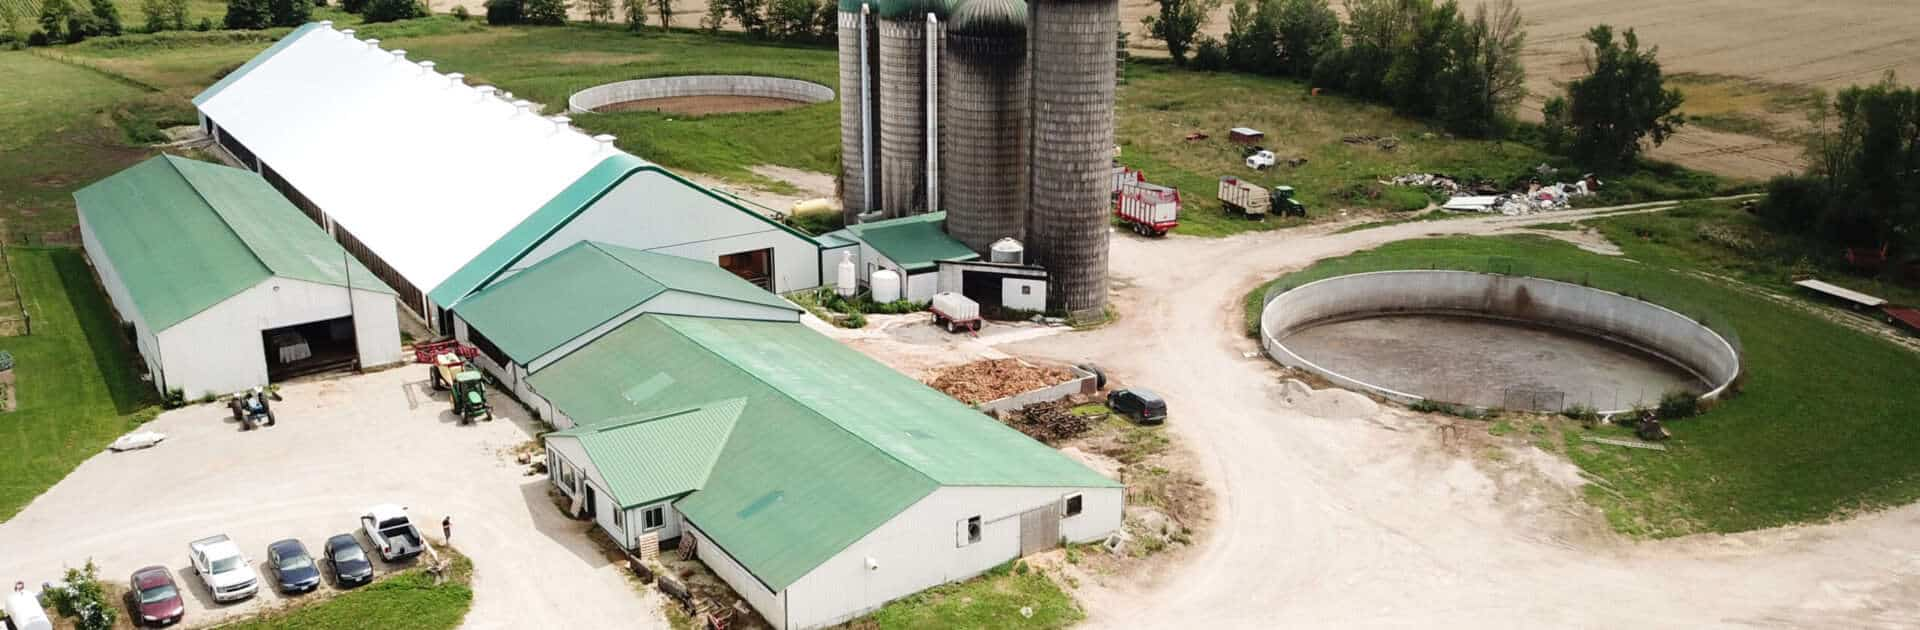 Fabric Barns & Dairy Cattle Barns built with Britespan Fabric Buildings